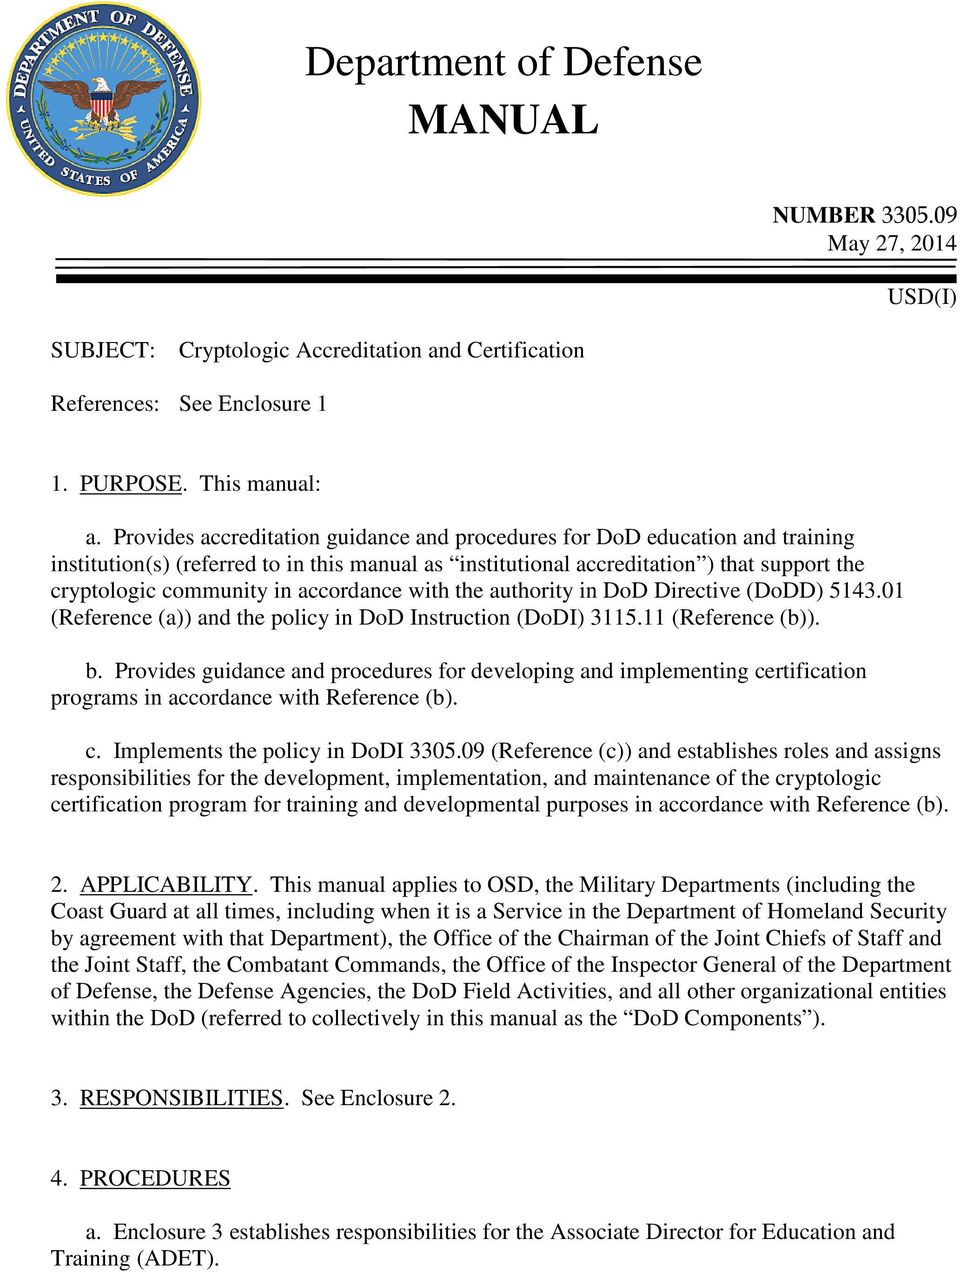 accordance with the authority in DoD Directive (DoDD) 5143.01 (Reference (a)) and the policy in DoD Instruction (DoDI) 3115.11 (Reference (b)). b.